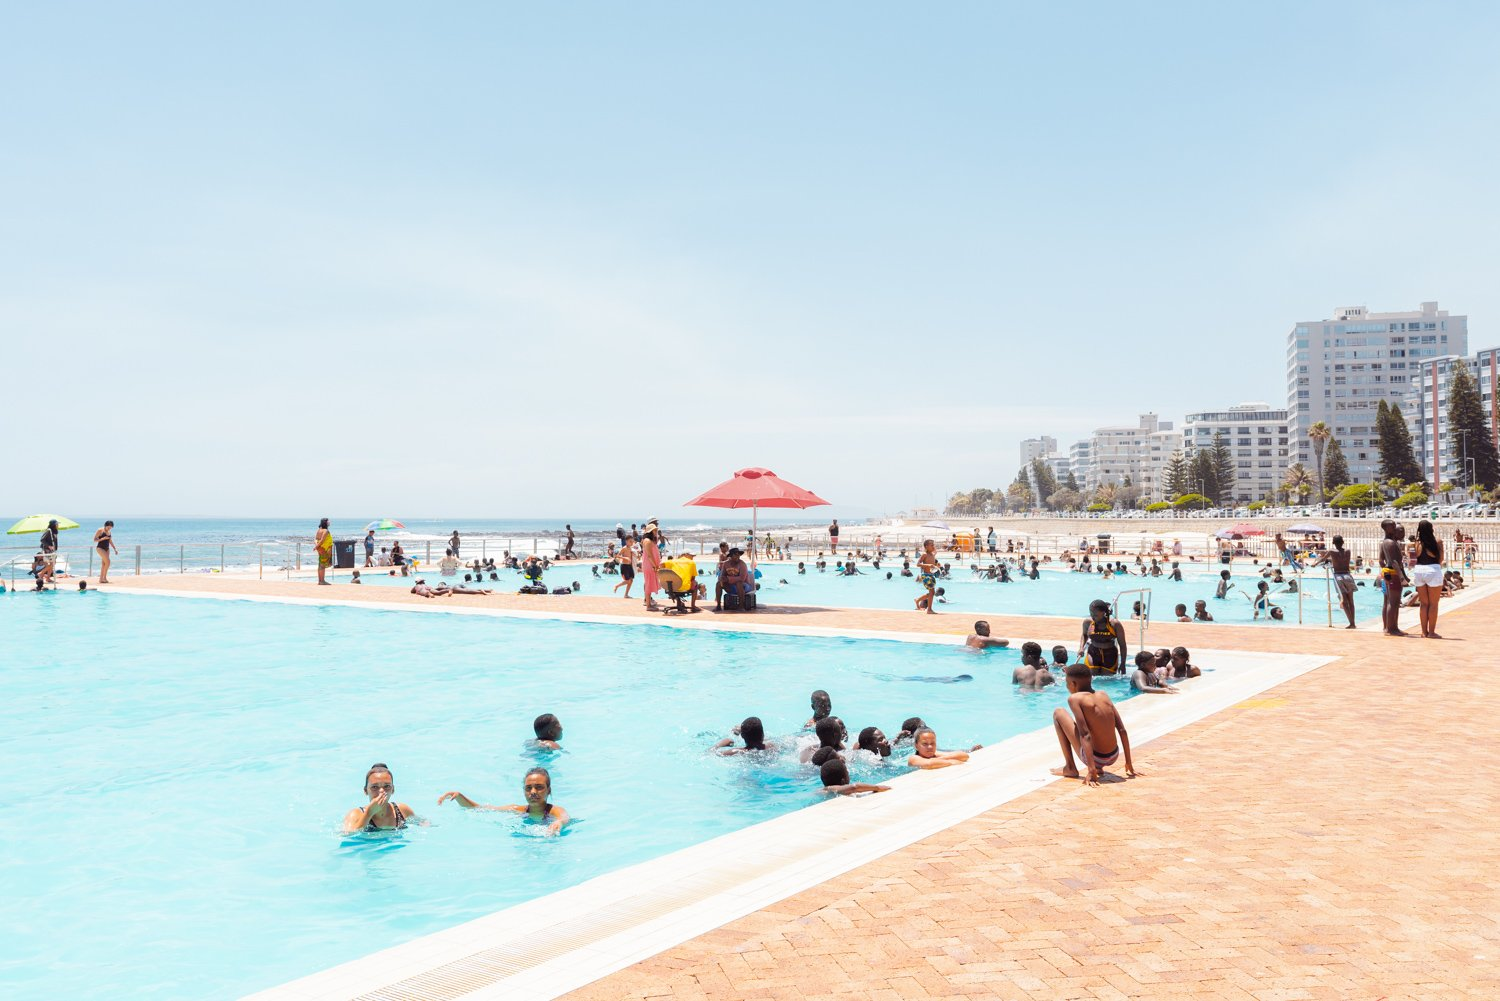 Lots of people in sea point pools on a hot day in cape town